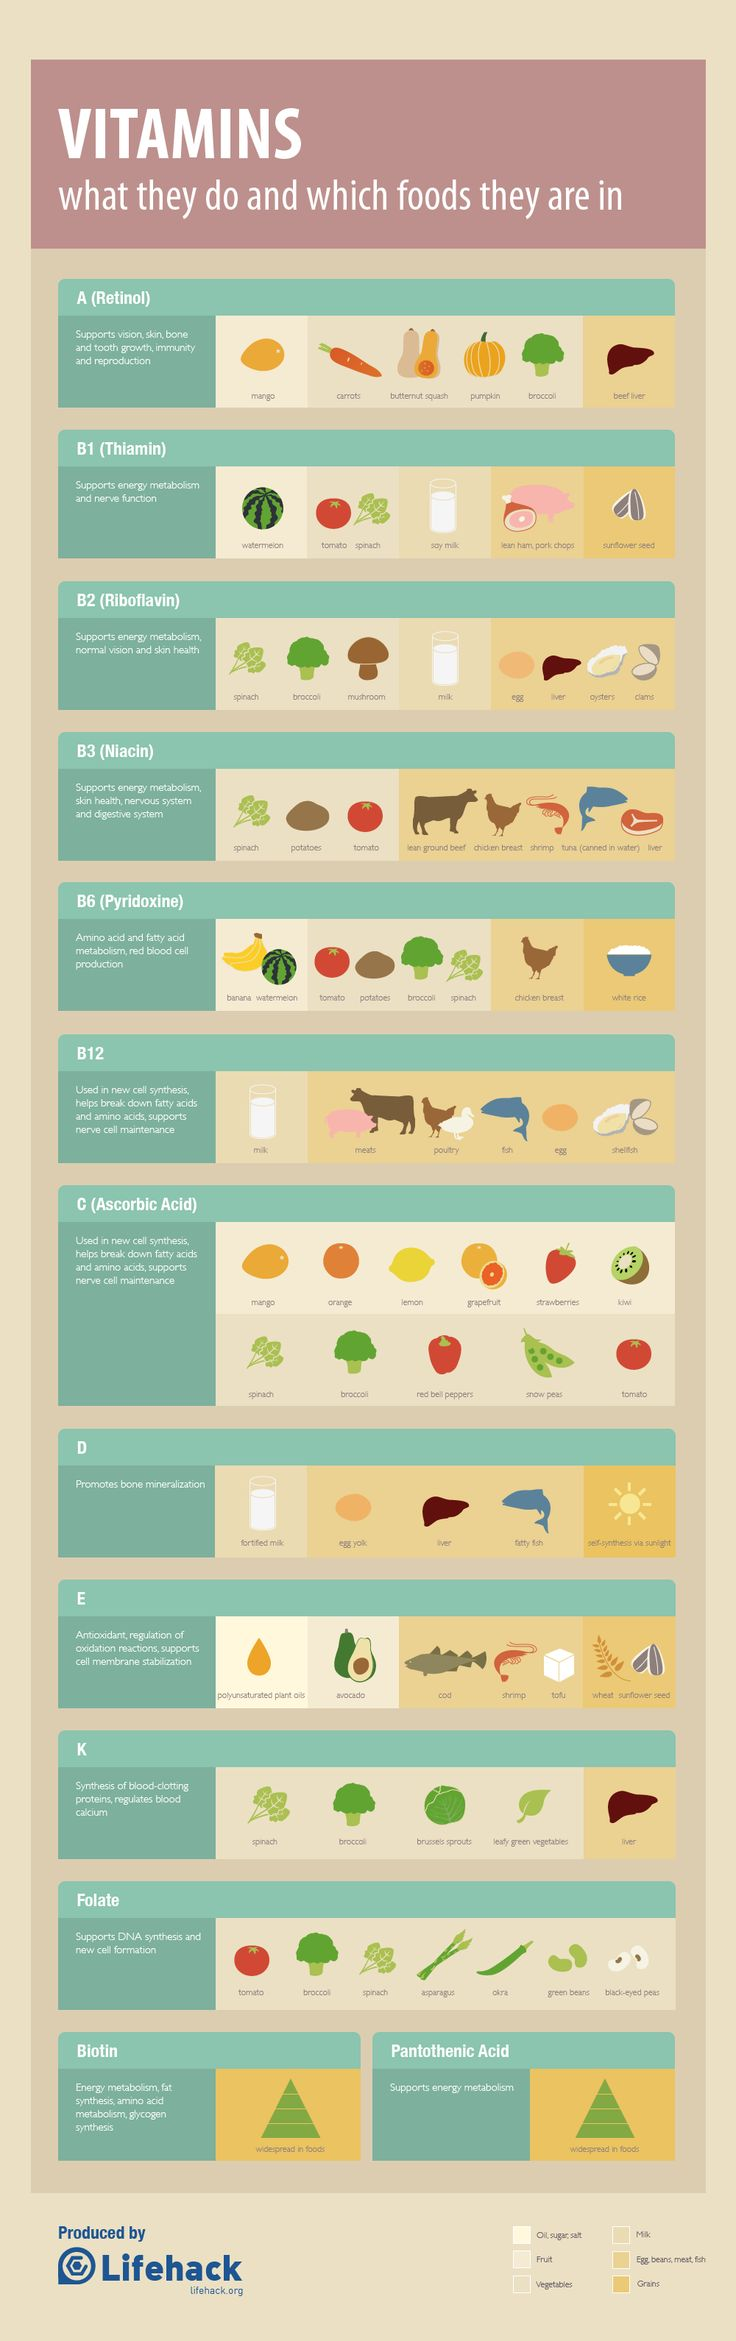 Vitamins Cheat Sheet Infographic is one of the best Infographics created in the Health category. Check out Vitamins Cheat Sheet now!